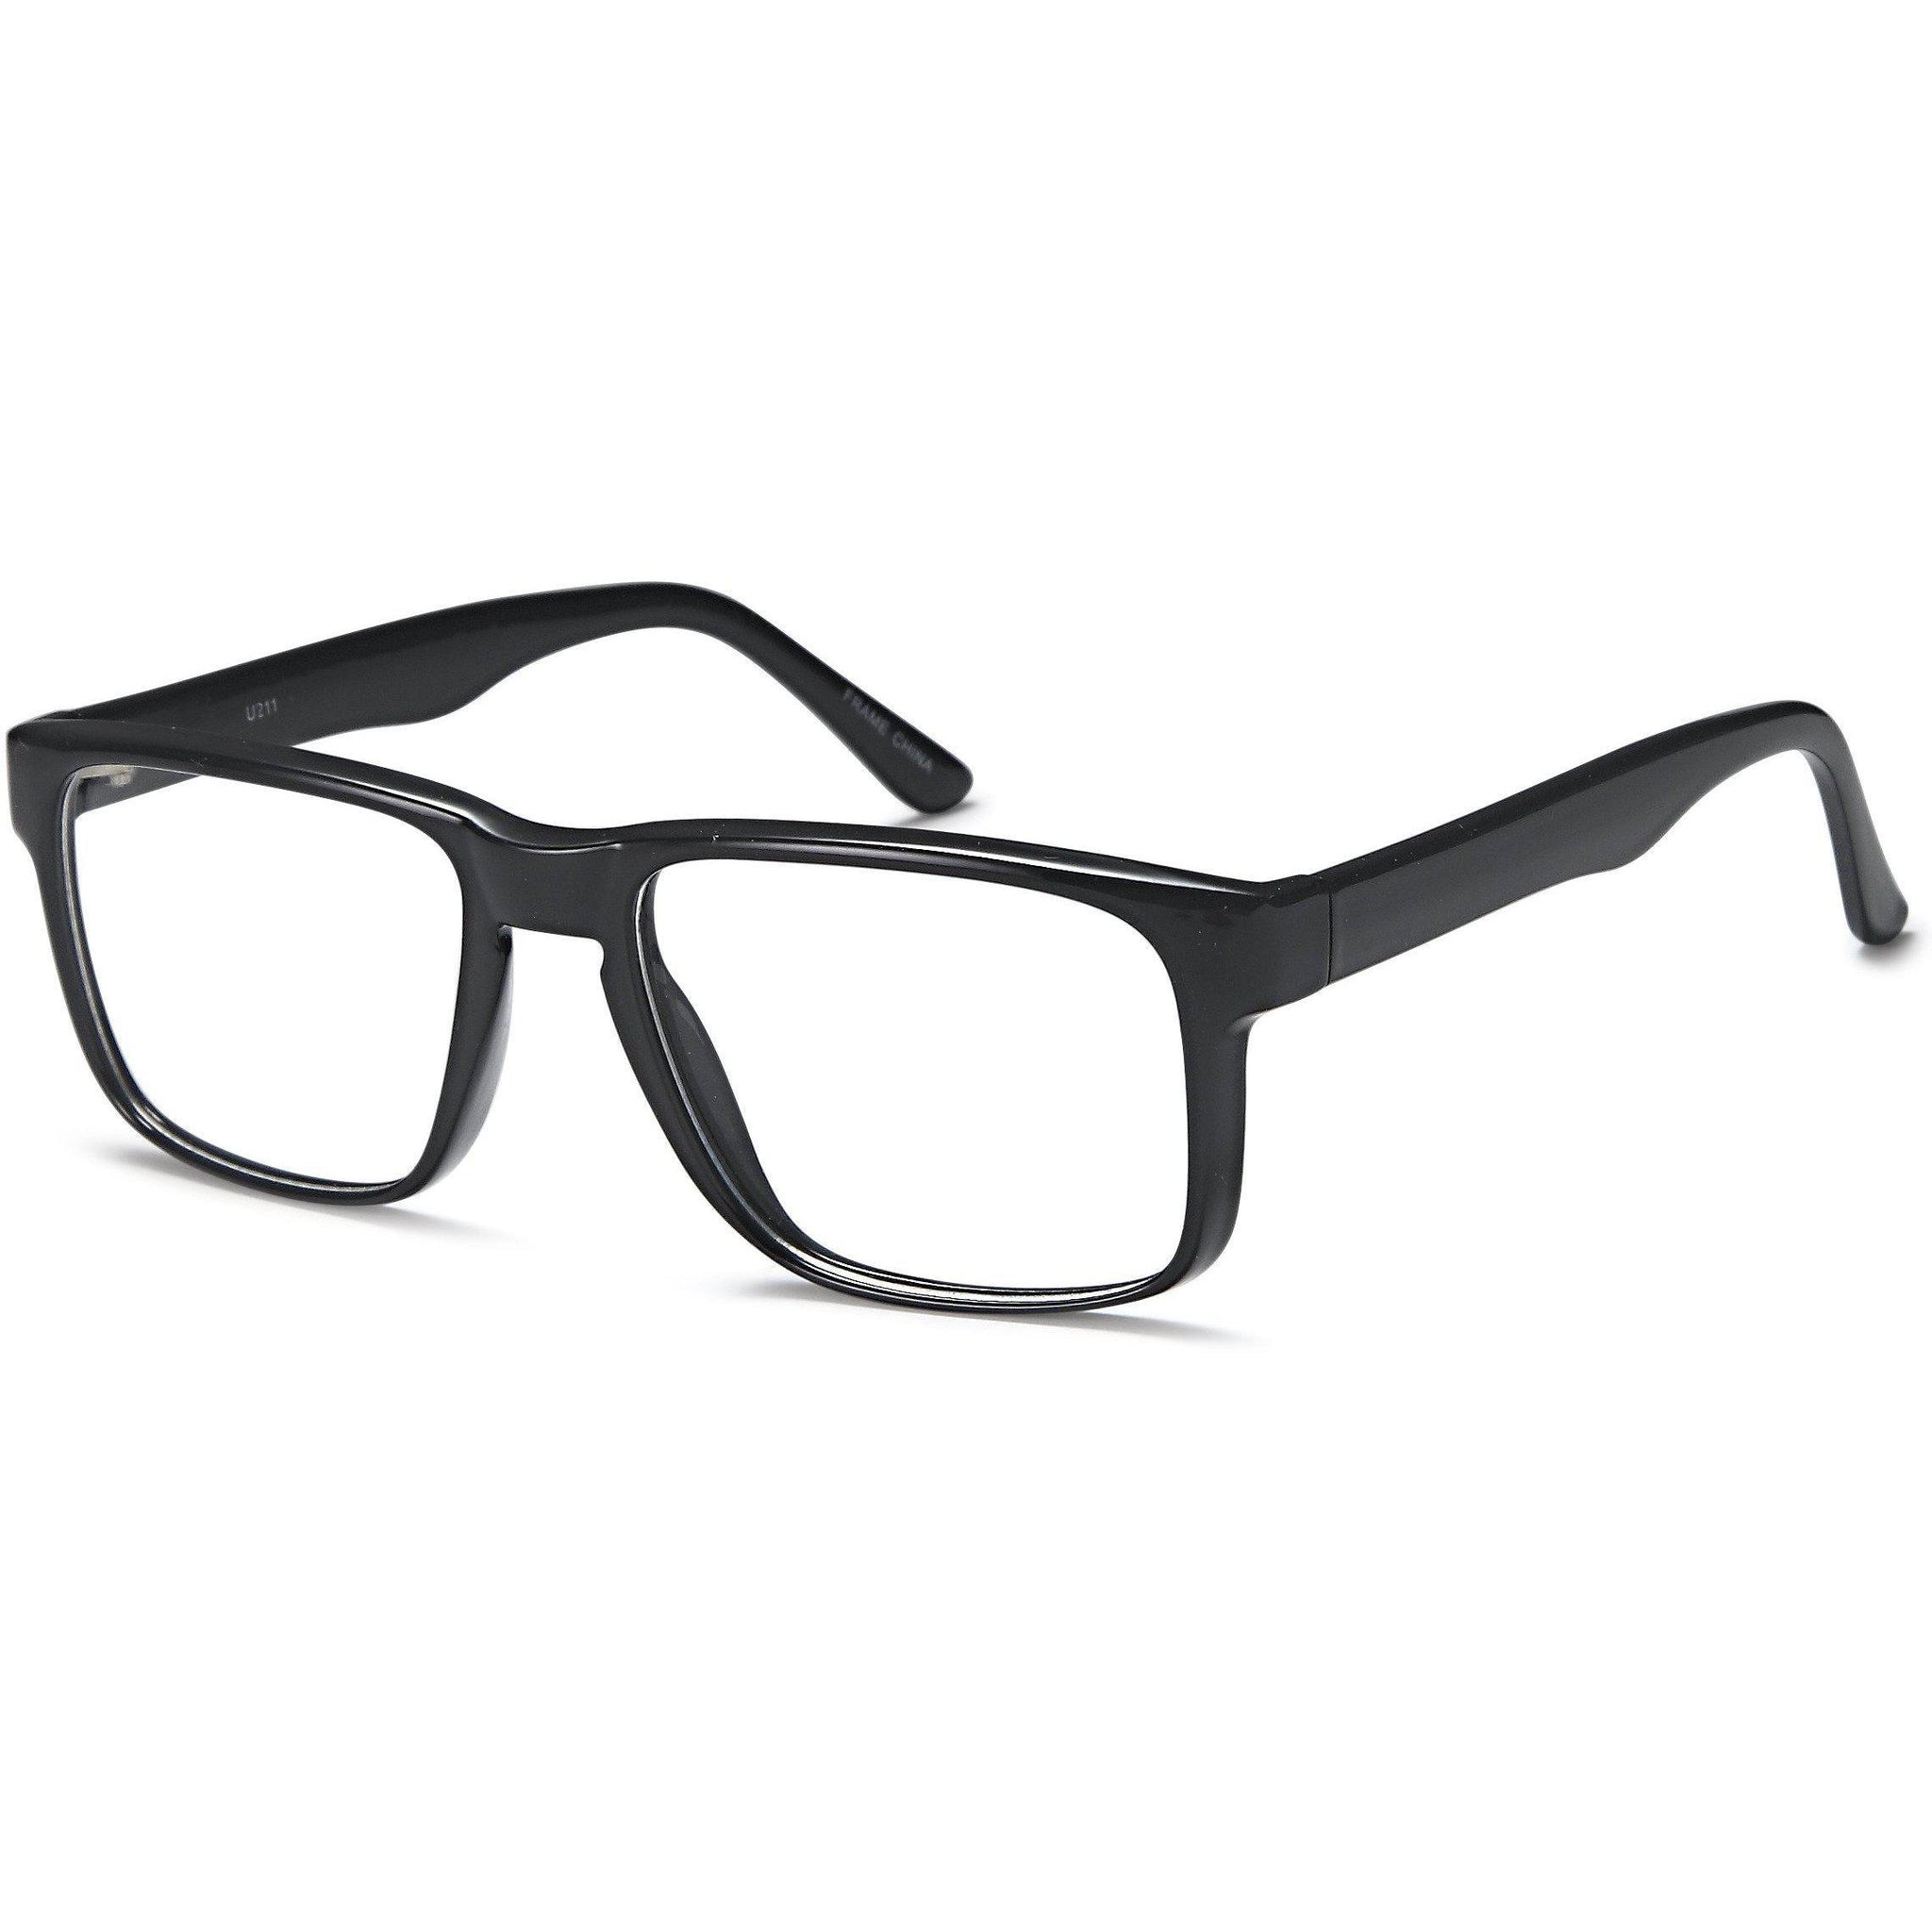 Wood Green by The Square Mile Prescription Eyeglasses Frame